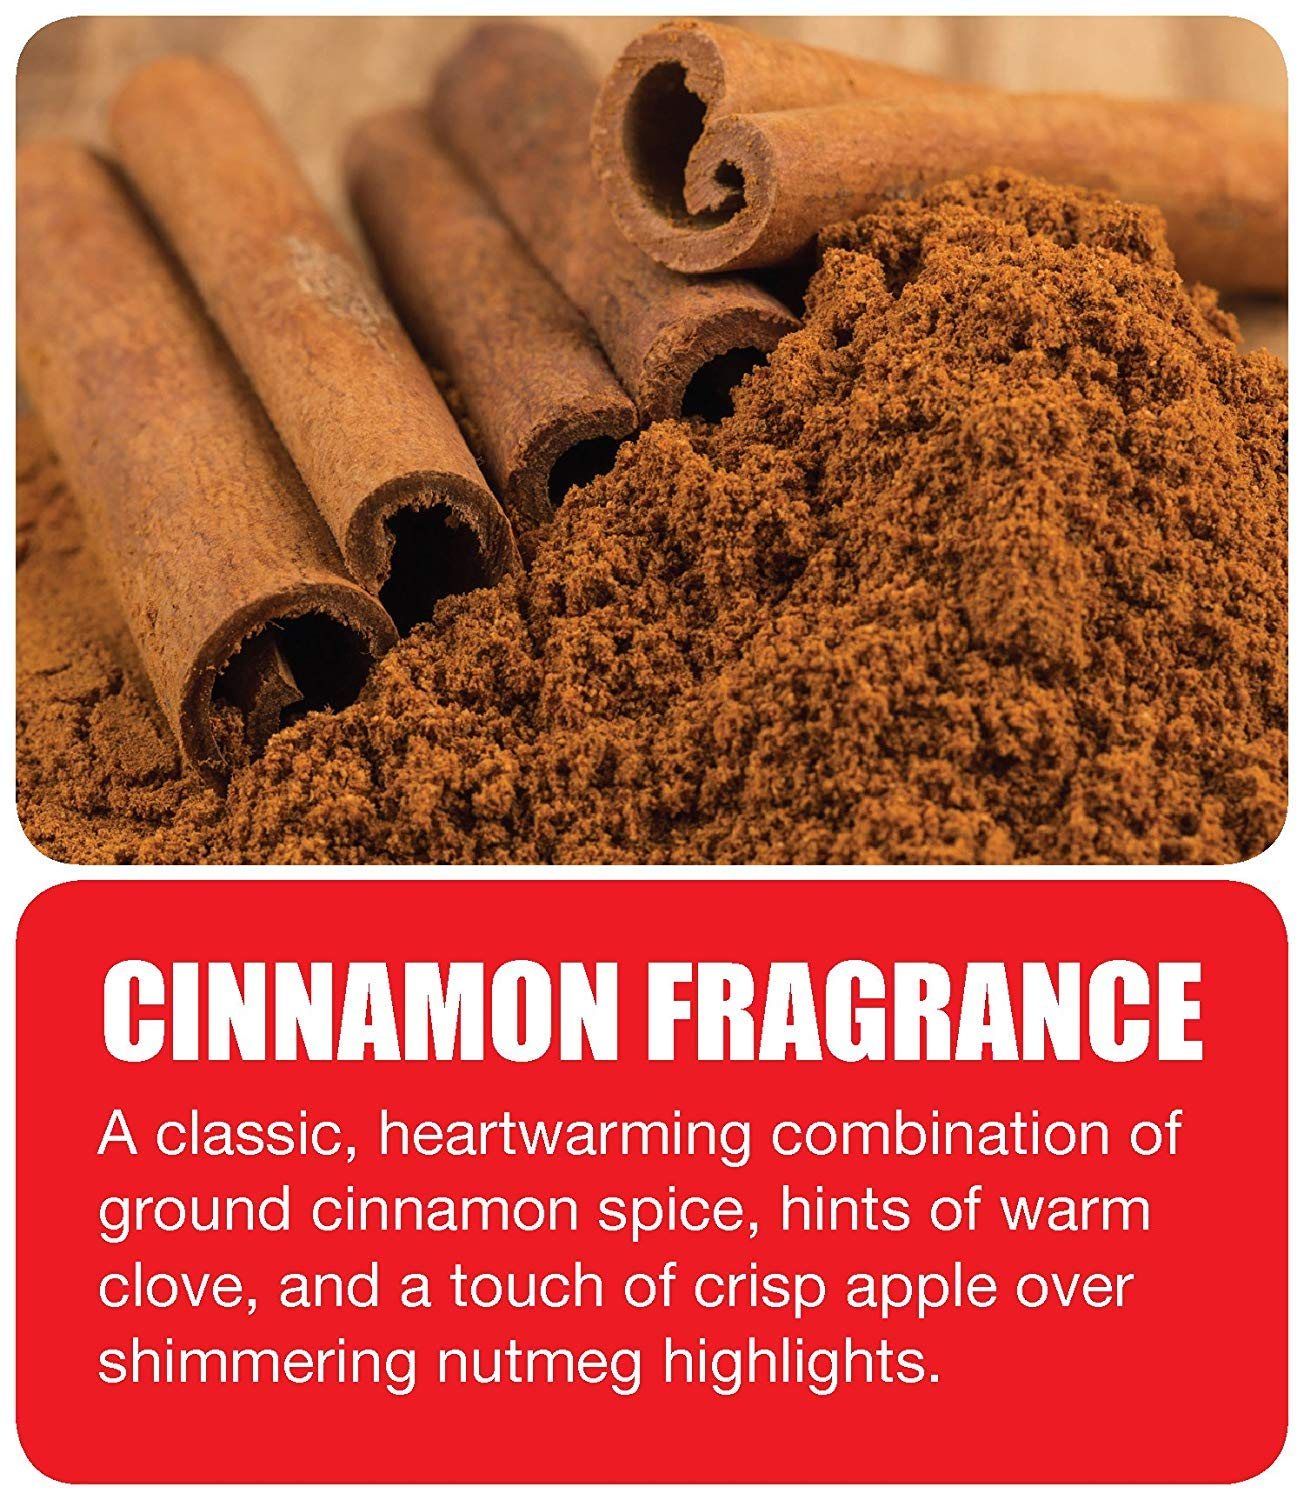 Big D 342 Odor Control Fogger, Cinnamon Fragrance, 5 oz (Pack of 12) - Kills Odors from fire, Flood, Decomposition, Skunk, Cigarettes, Musty Smells - Ideal for use in Cars (Вundlе оf Fіvе) by Big D (Image #2)